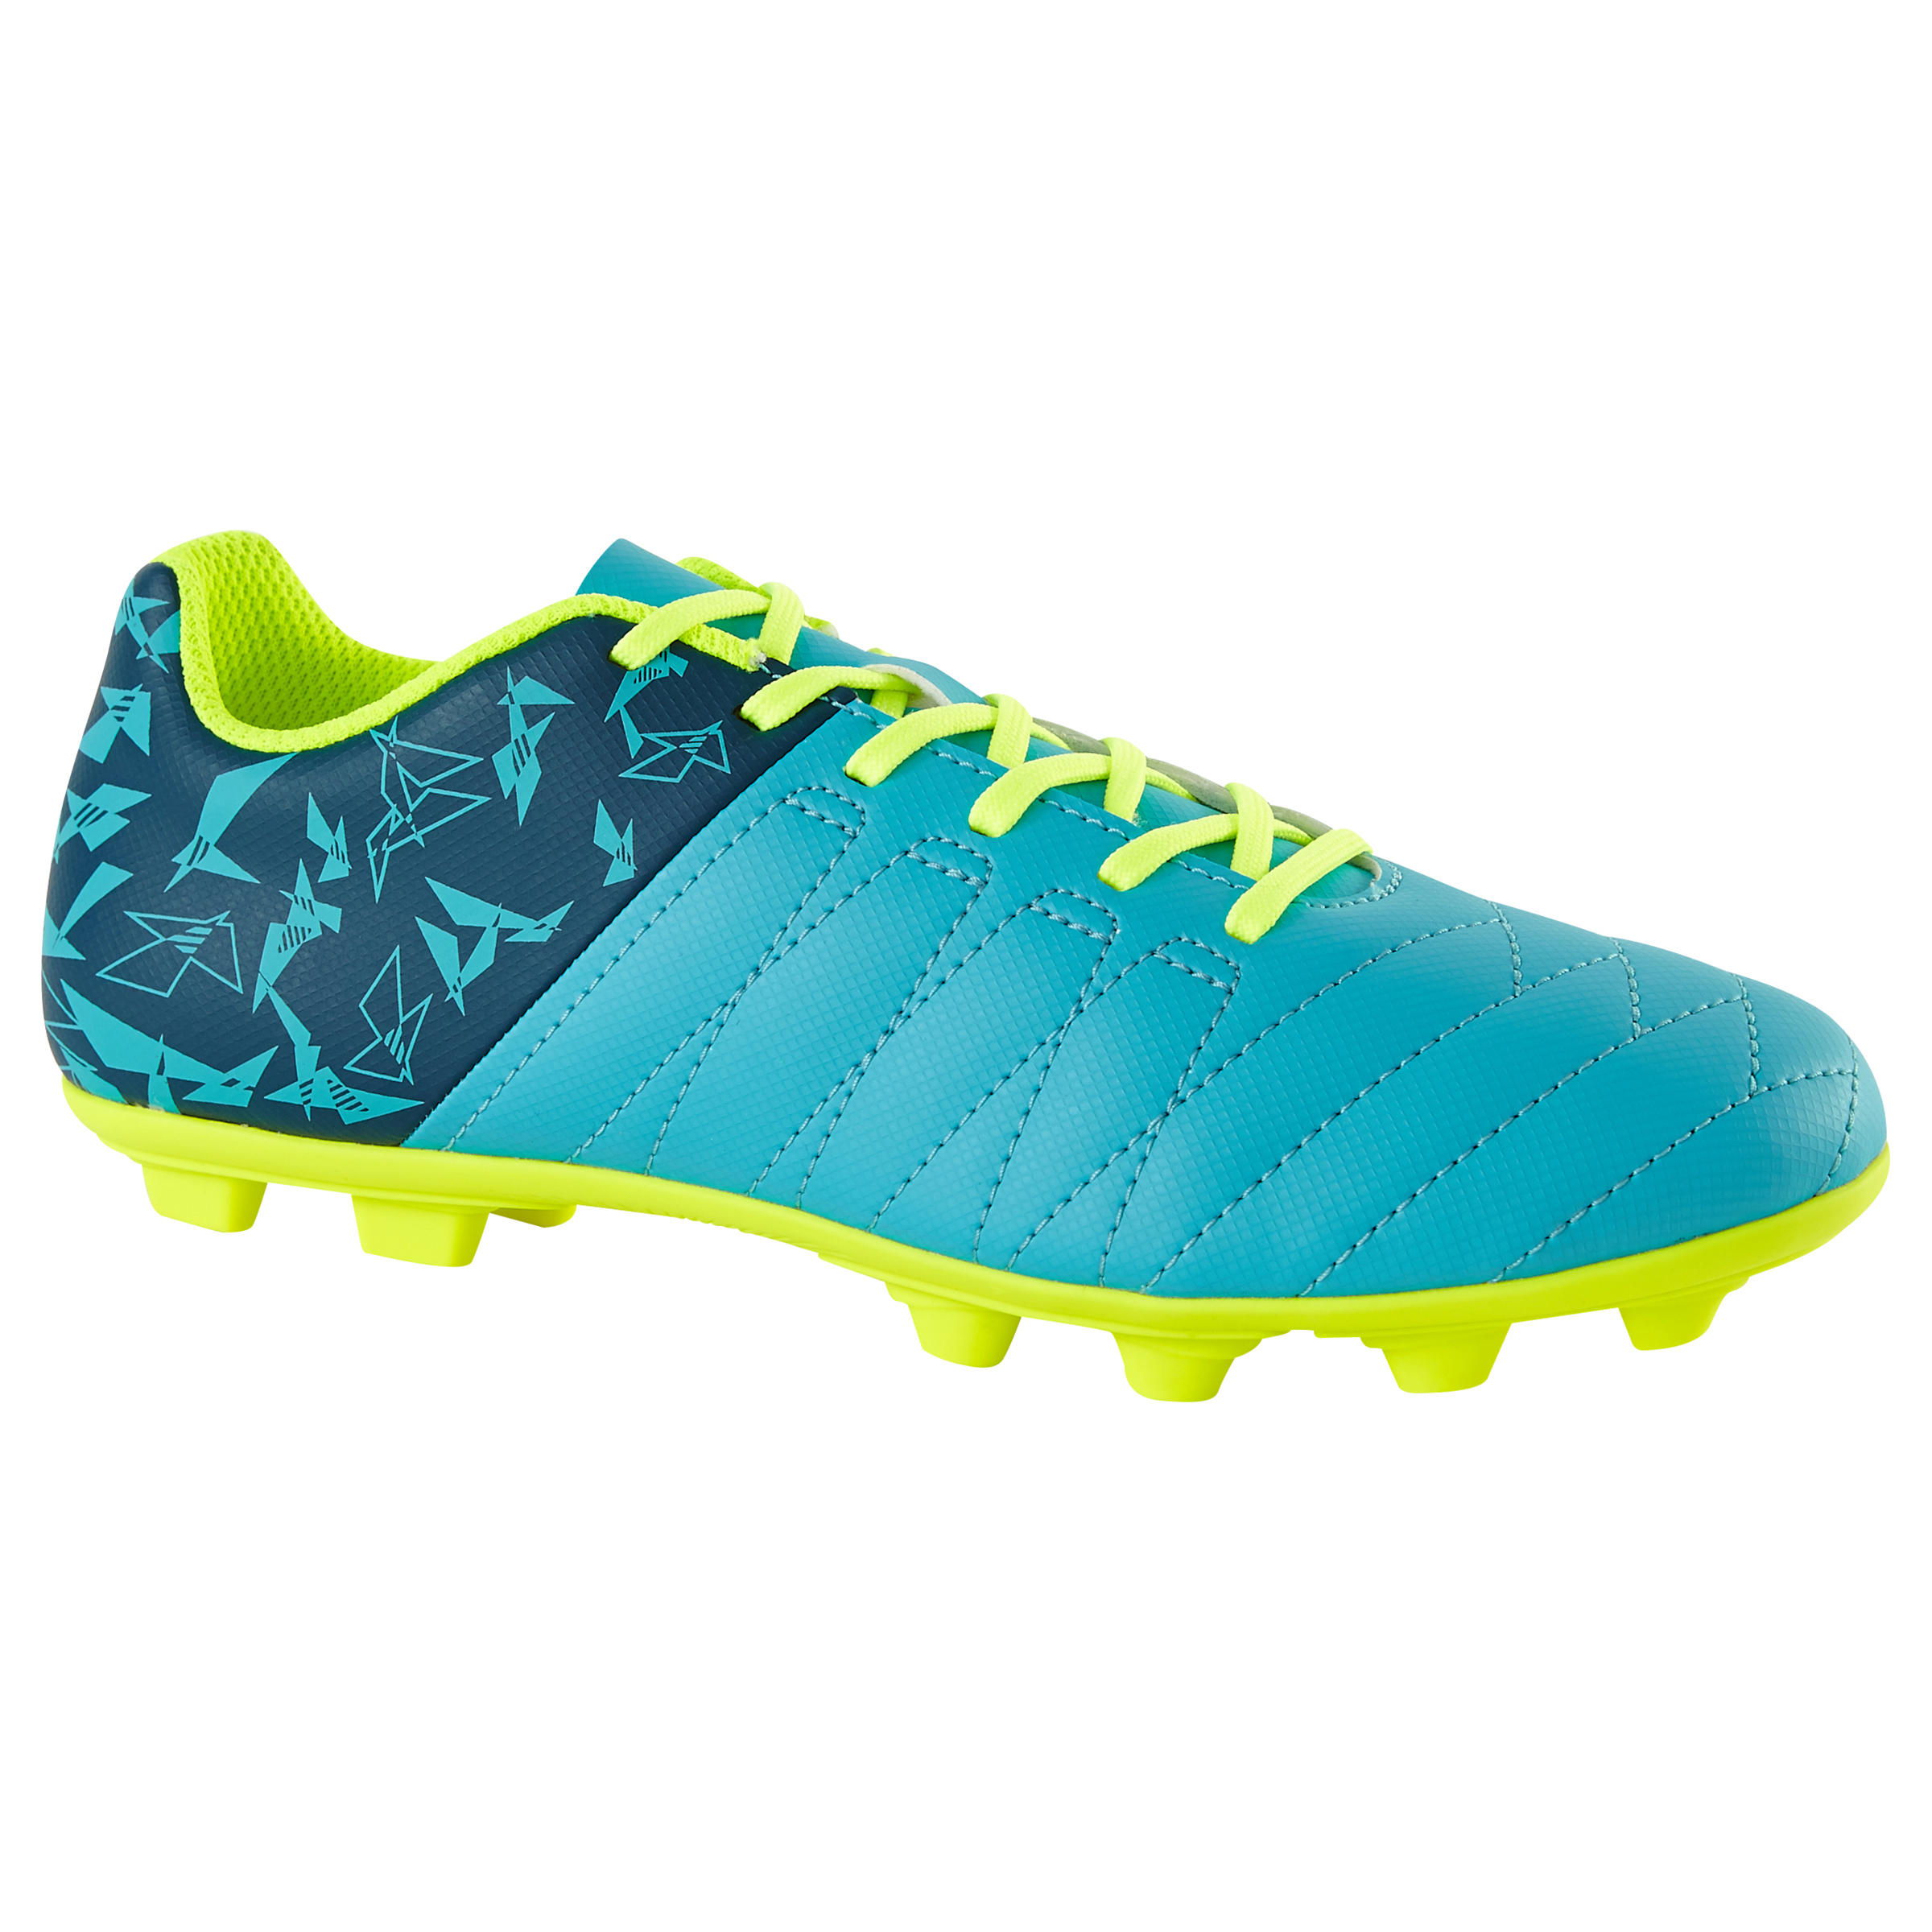 CLR 500 FG Kids' Dry Pitch Soccer Cleats- Blue/Neon Yellow